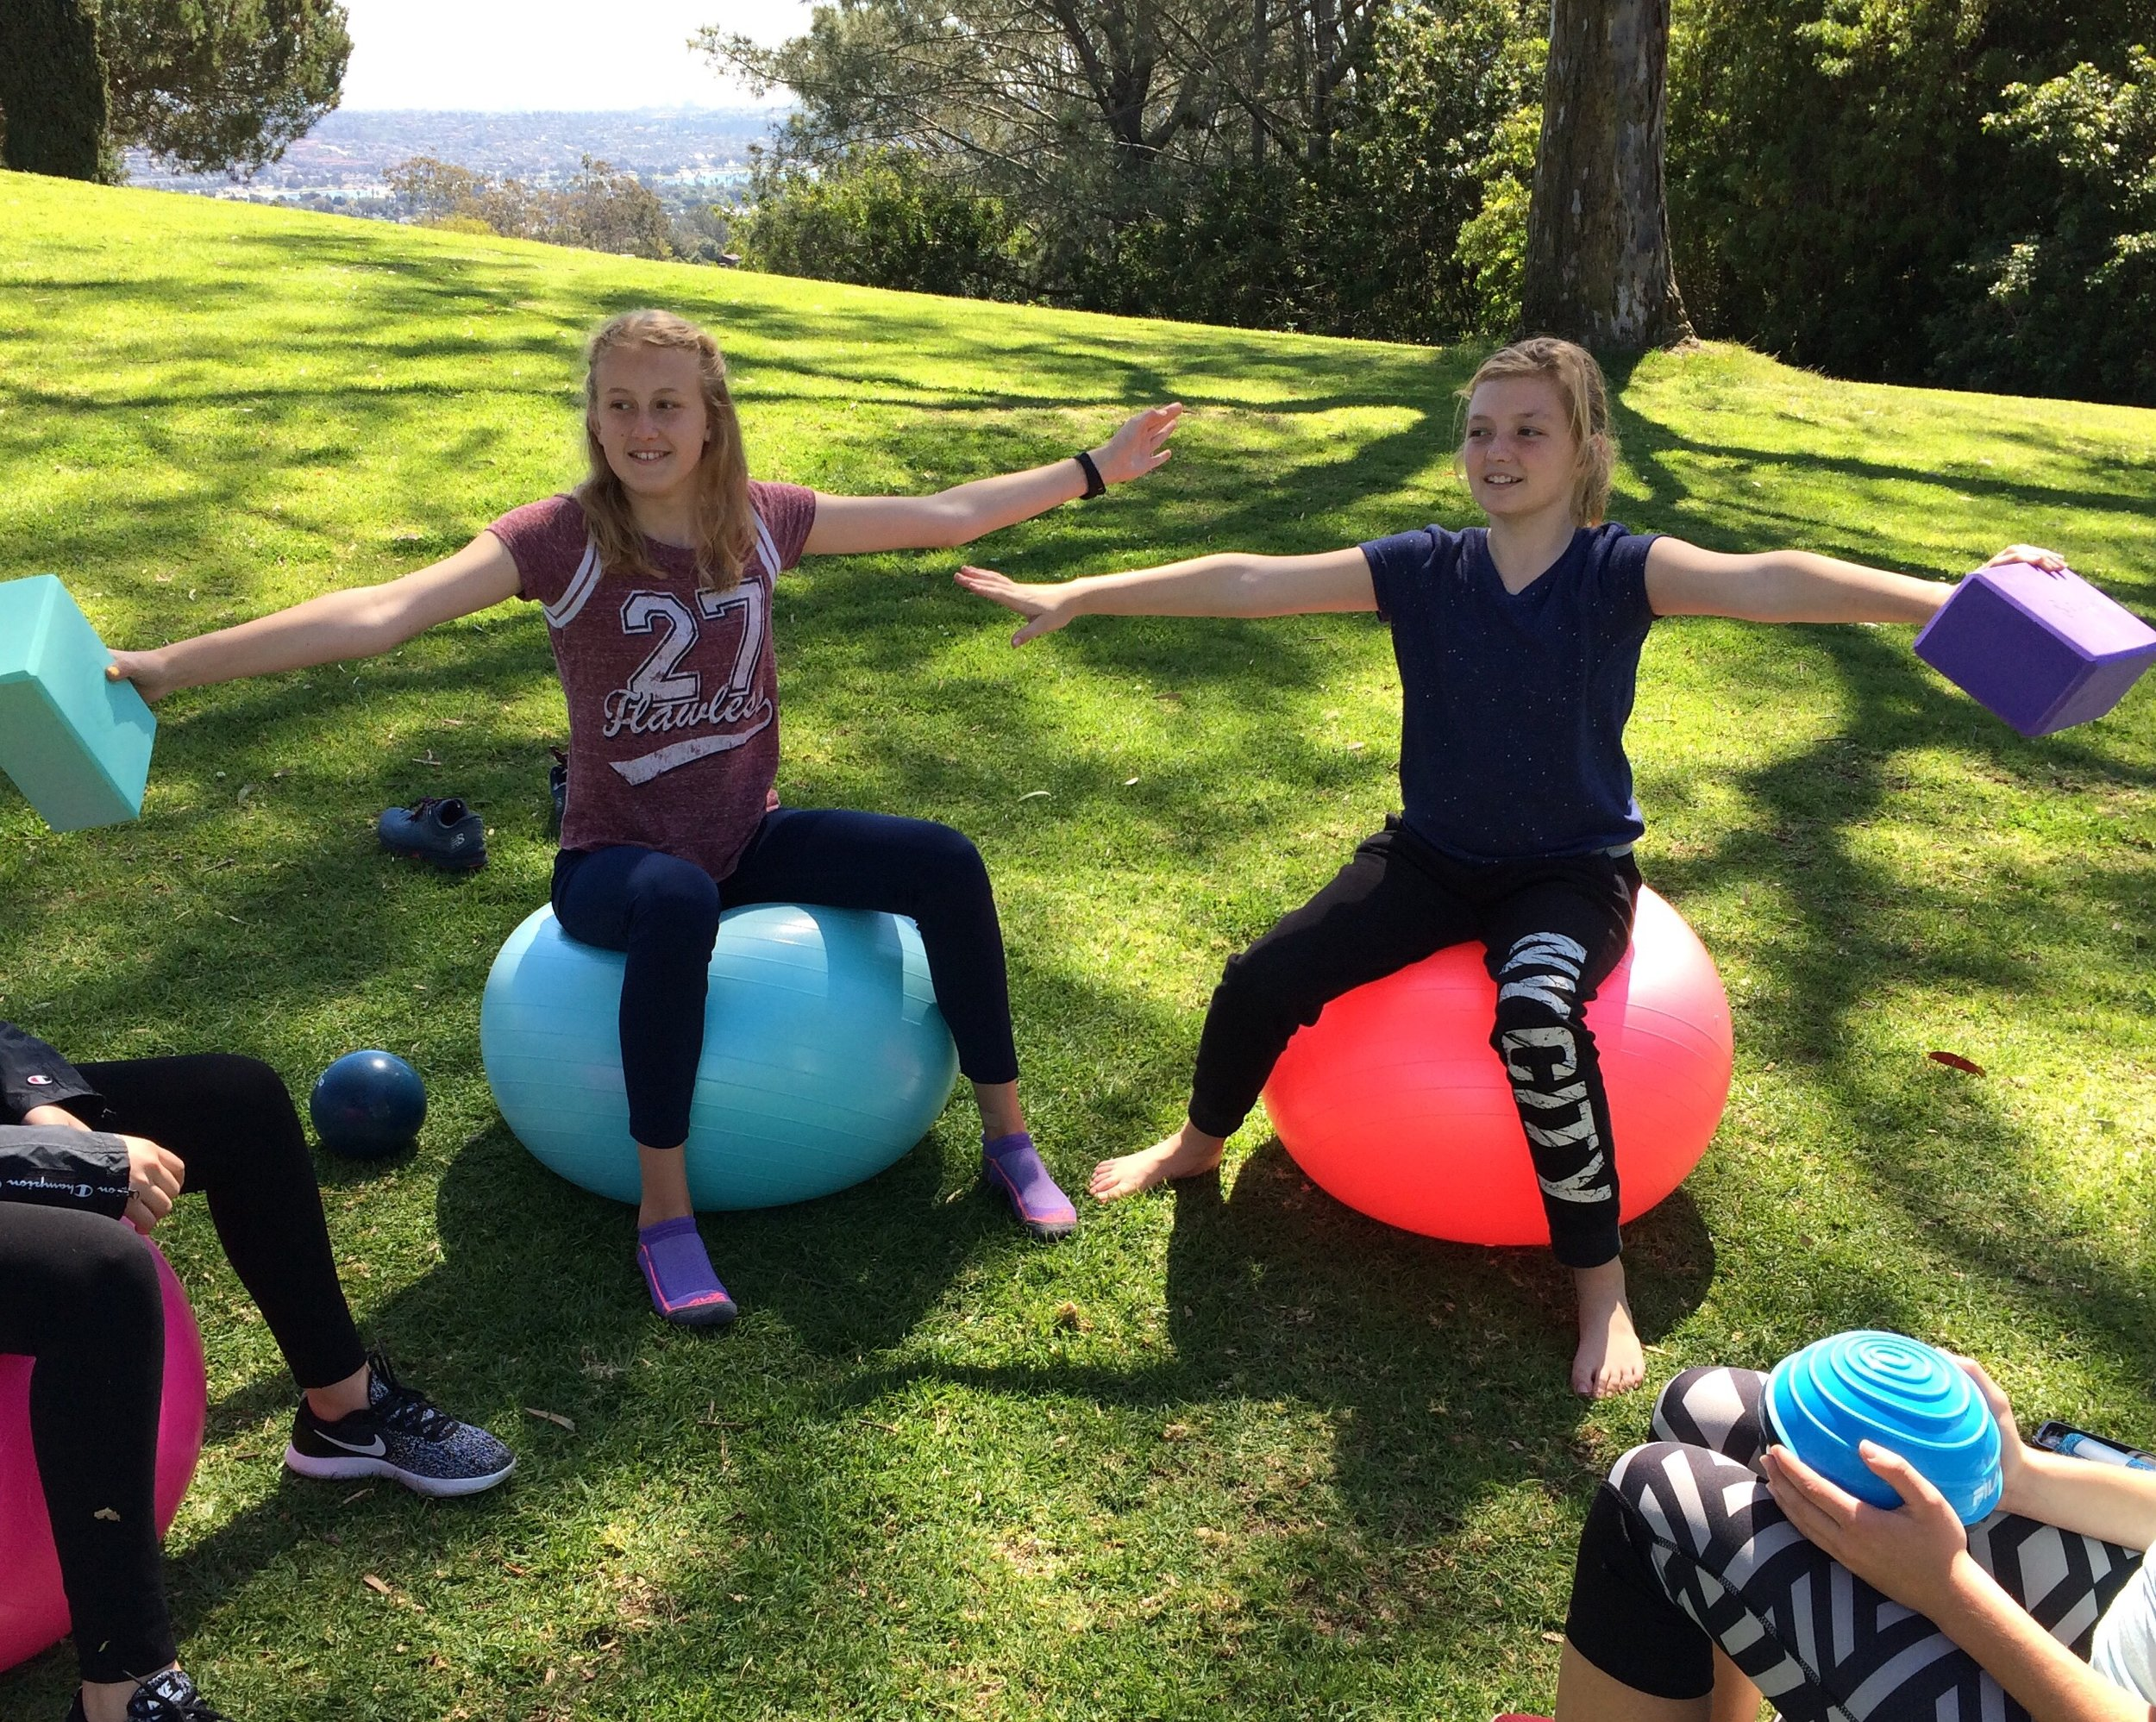 Girls exercising for fun at Kate Sessions Park